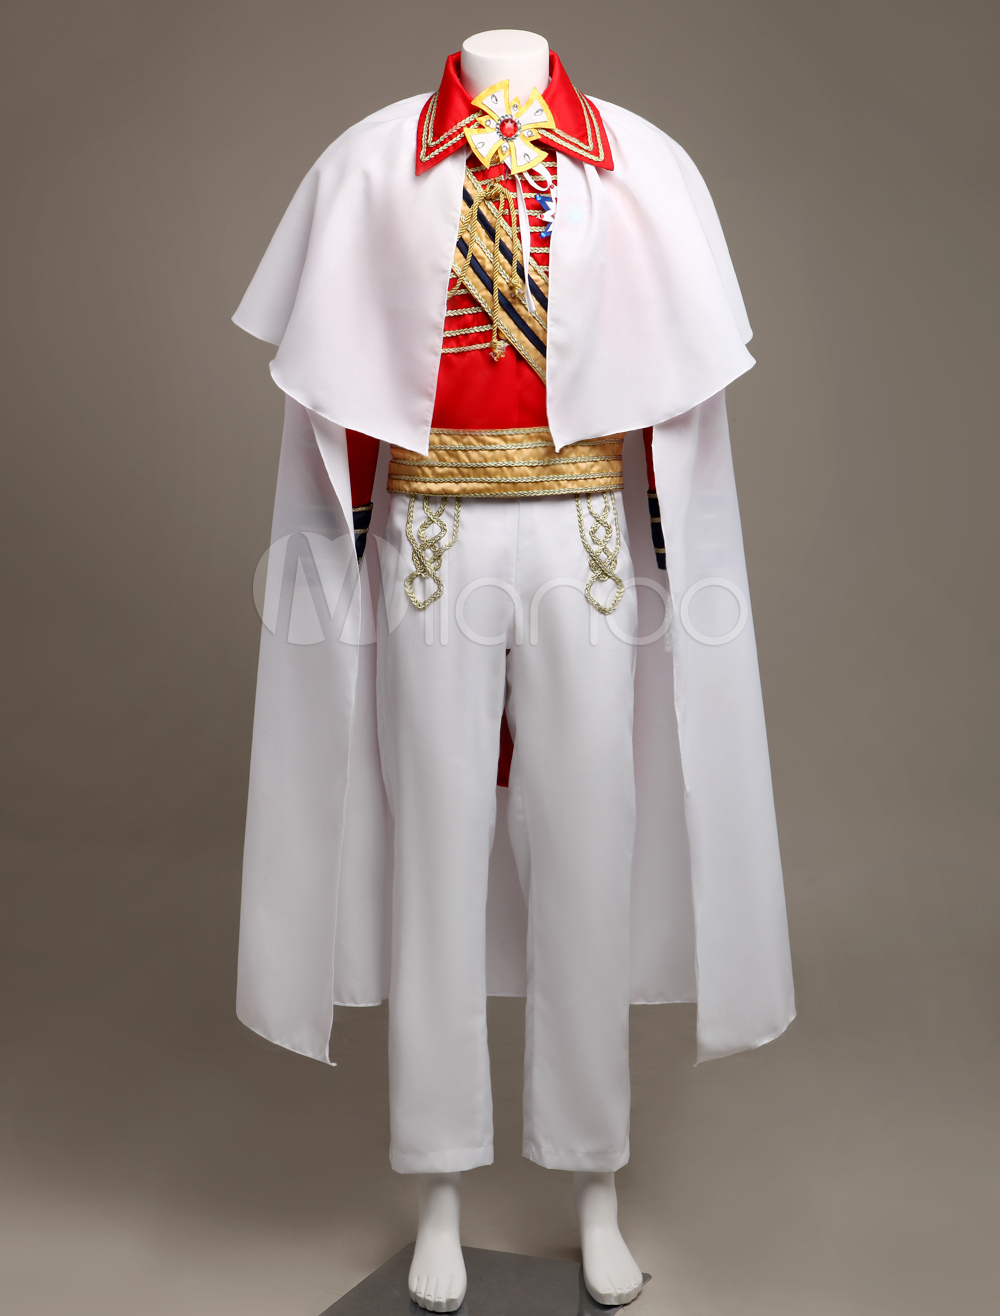 Royal Retro Costume Men S Red European Vintage Prince